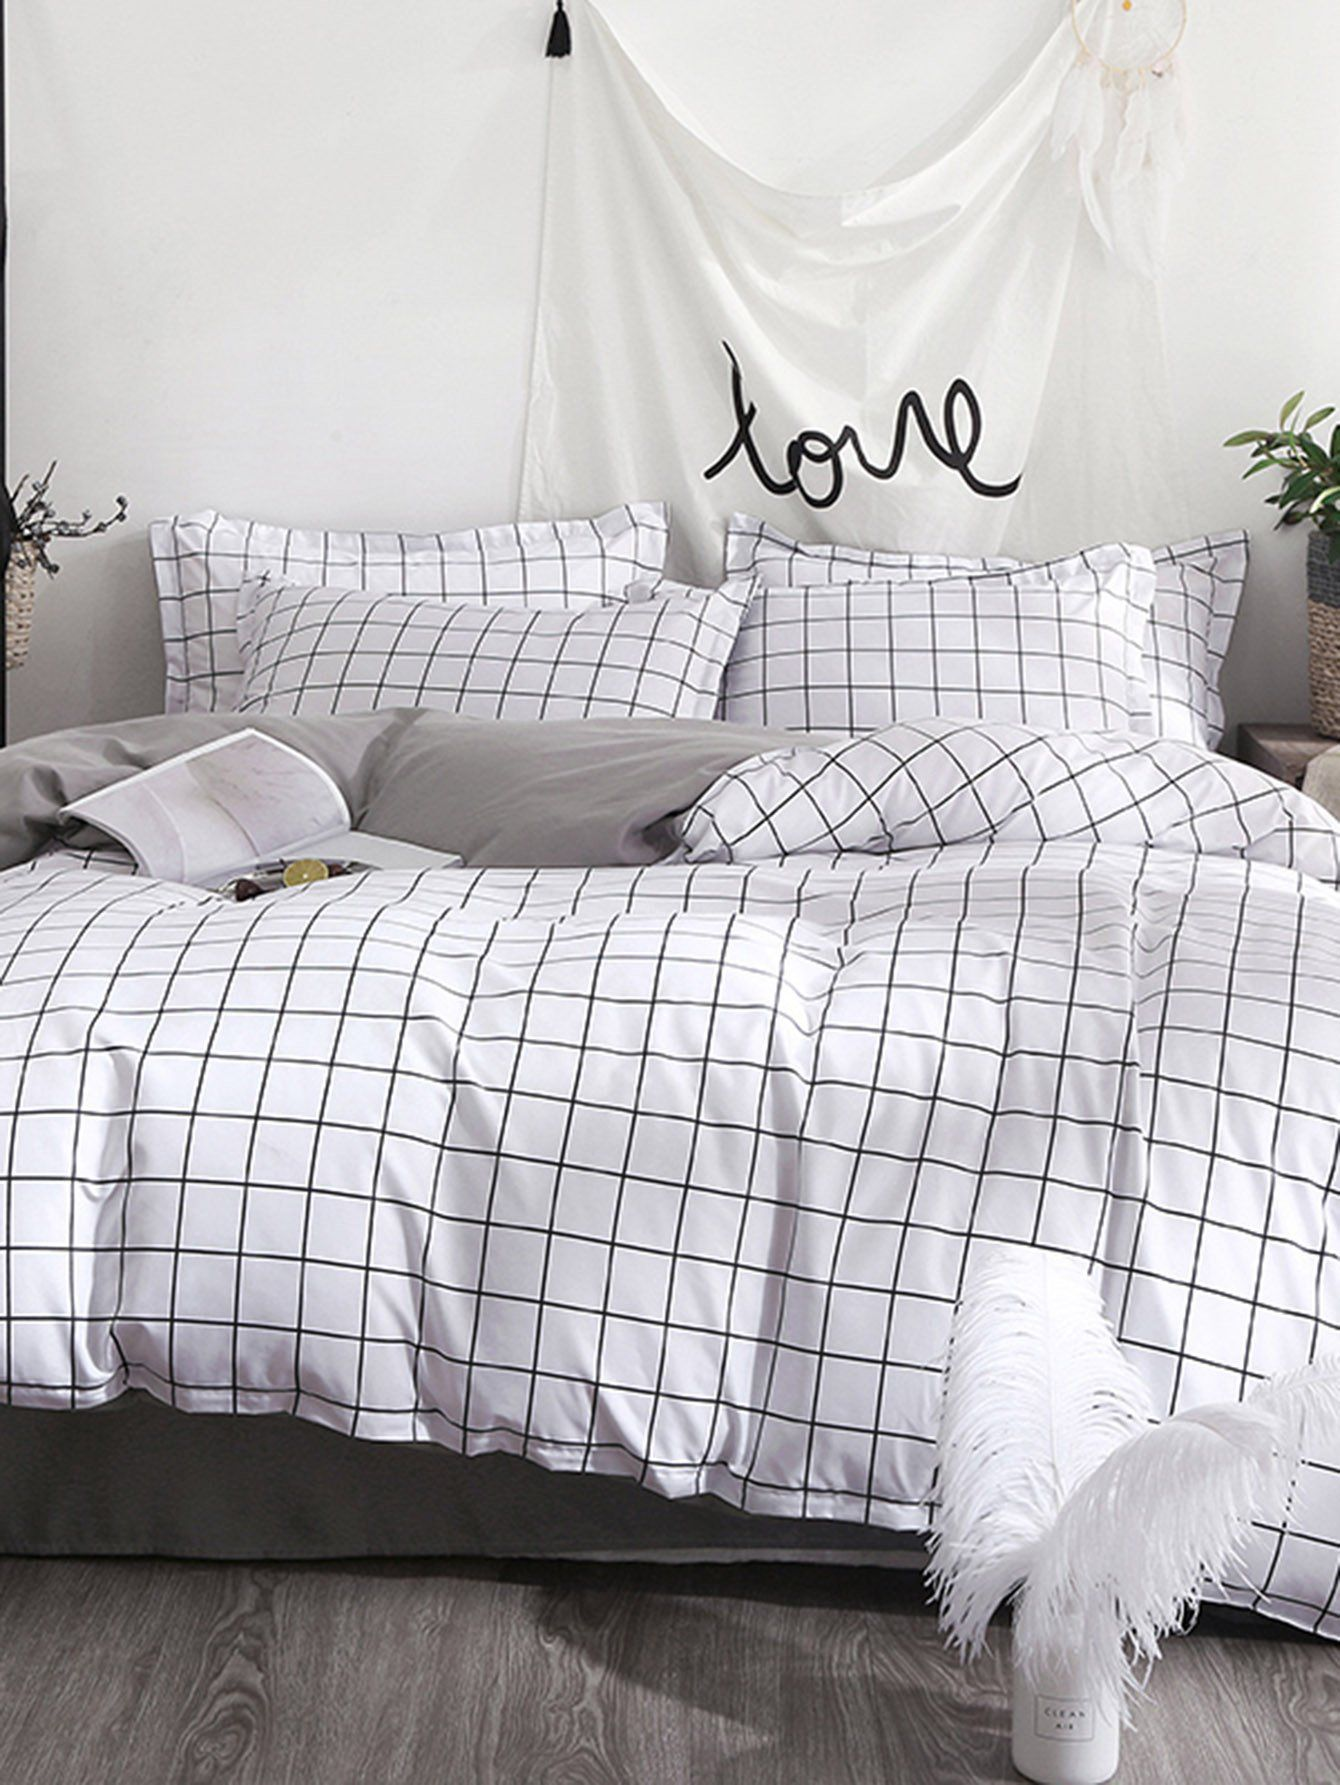 Allover Grid Print Sheet Set Bed Linens Luxury Luxury Bedding Bedding Sets